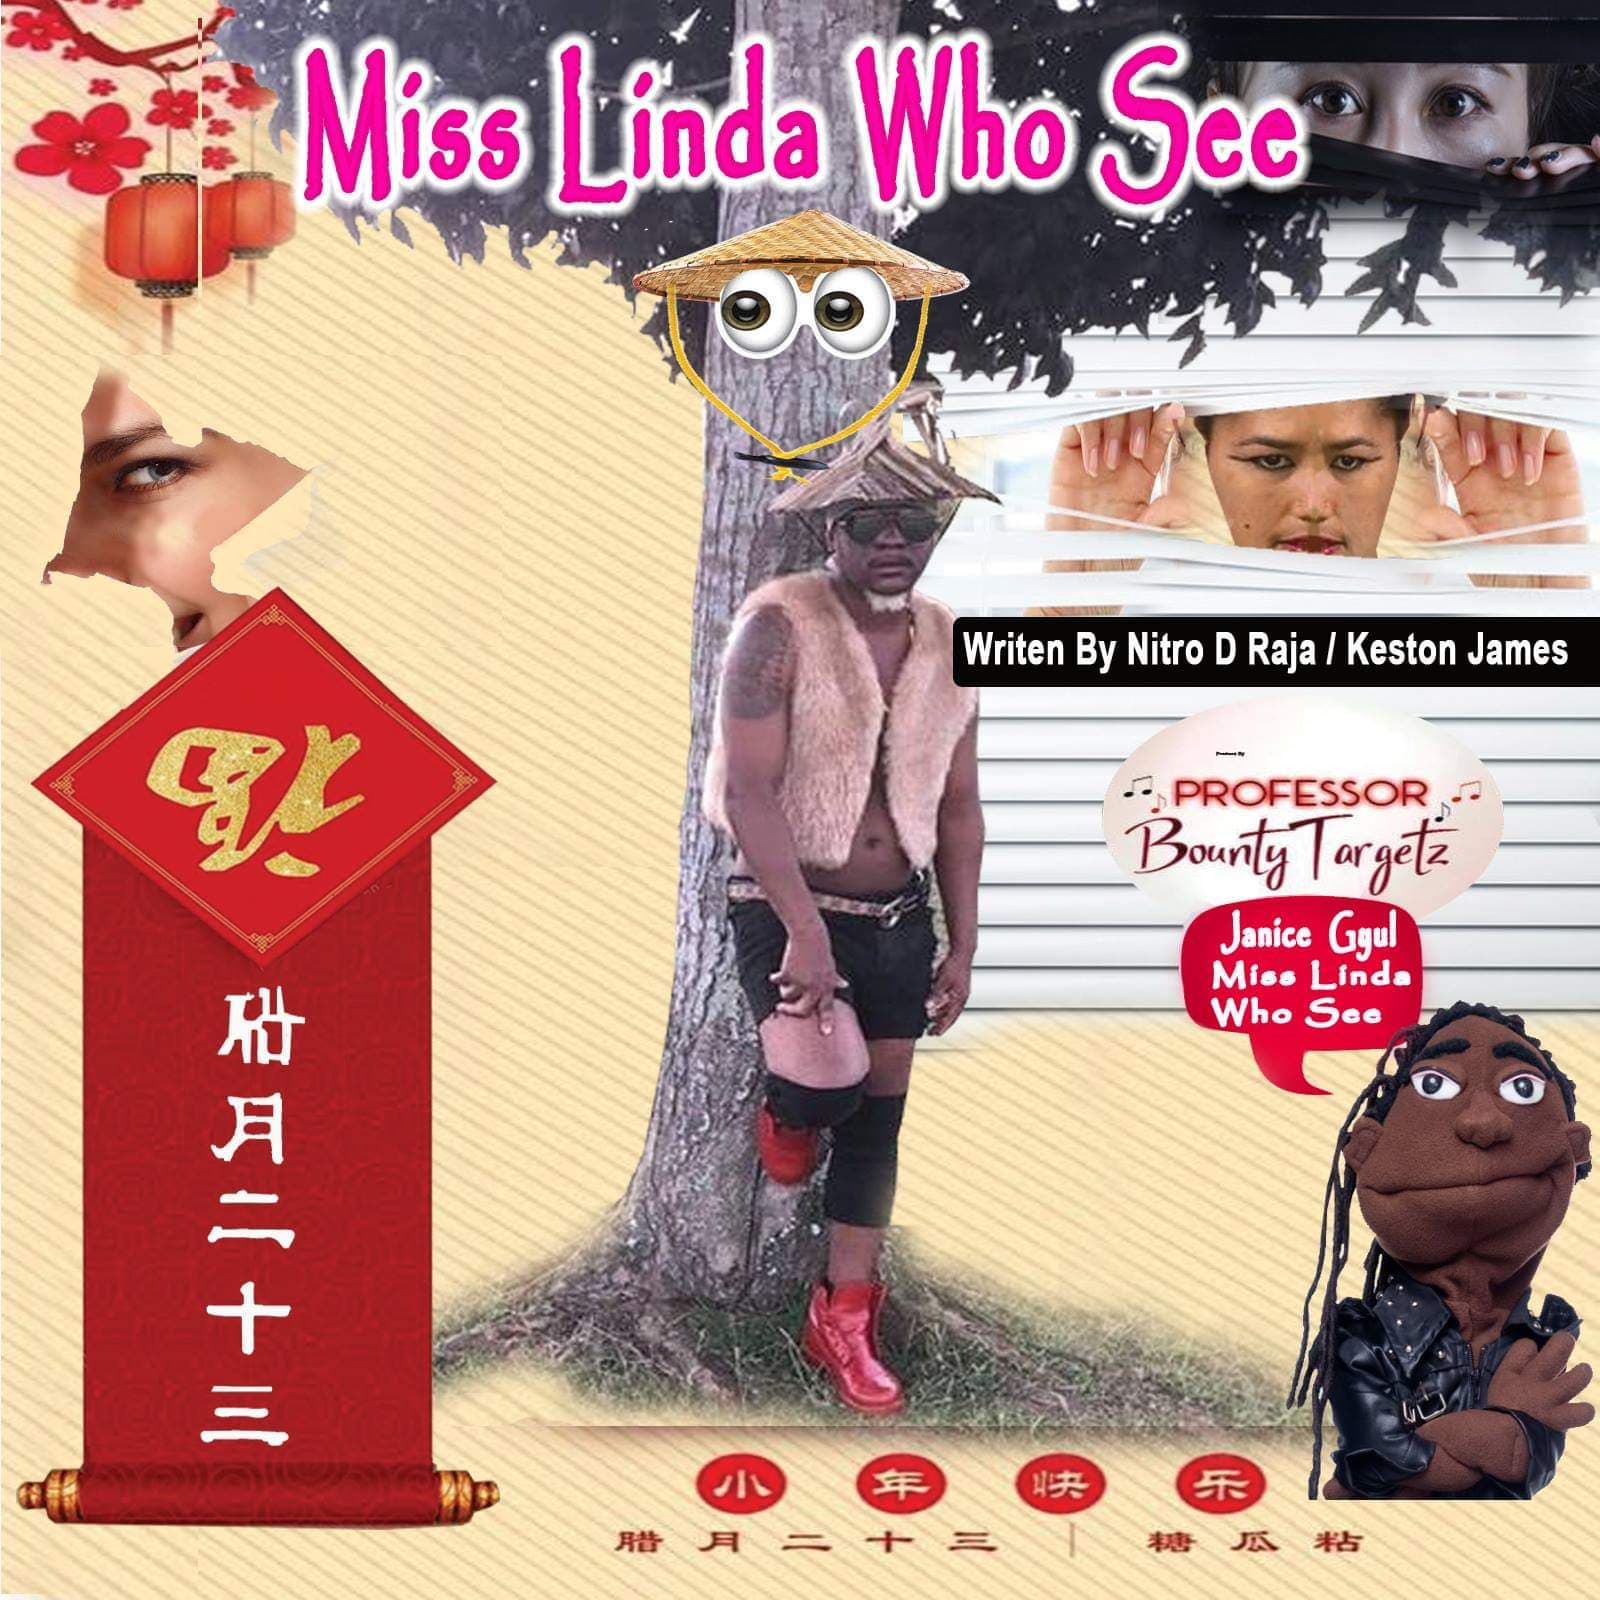 Linda Who See By Raw Nitro D Raja (2019 Chutney Soca)